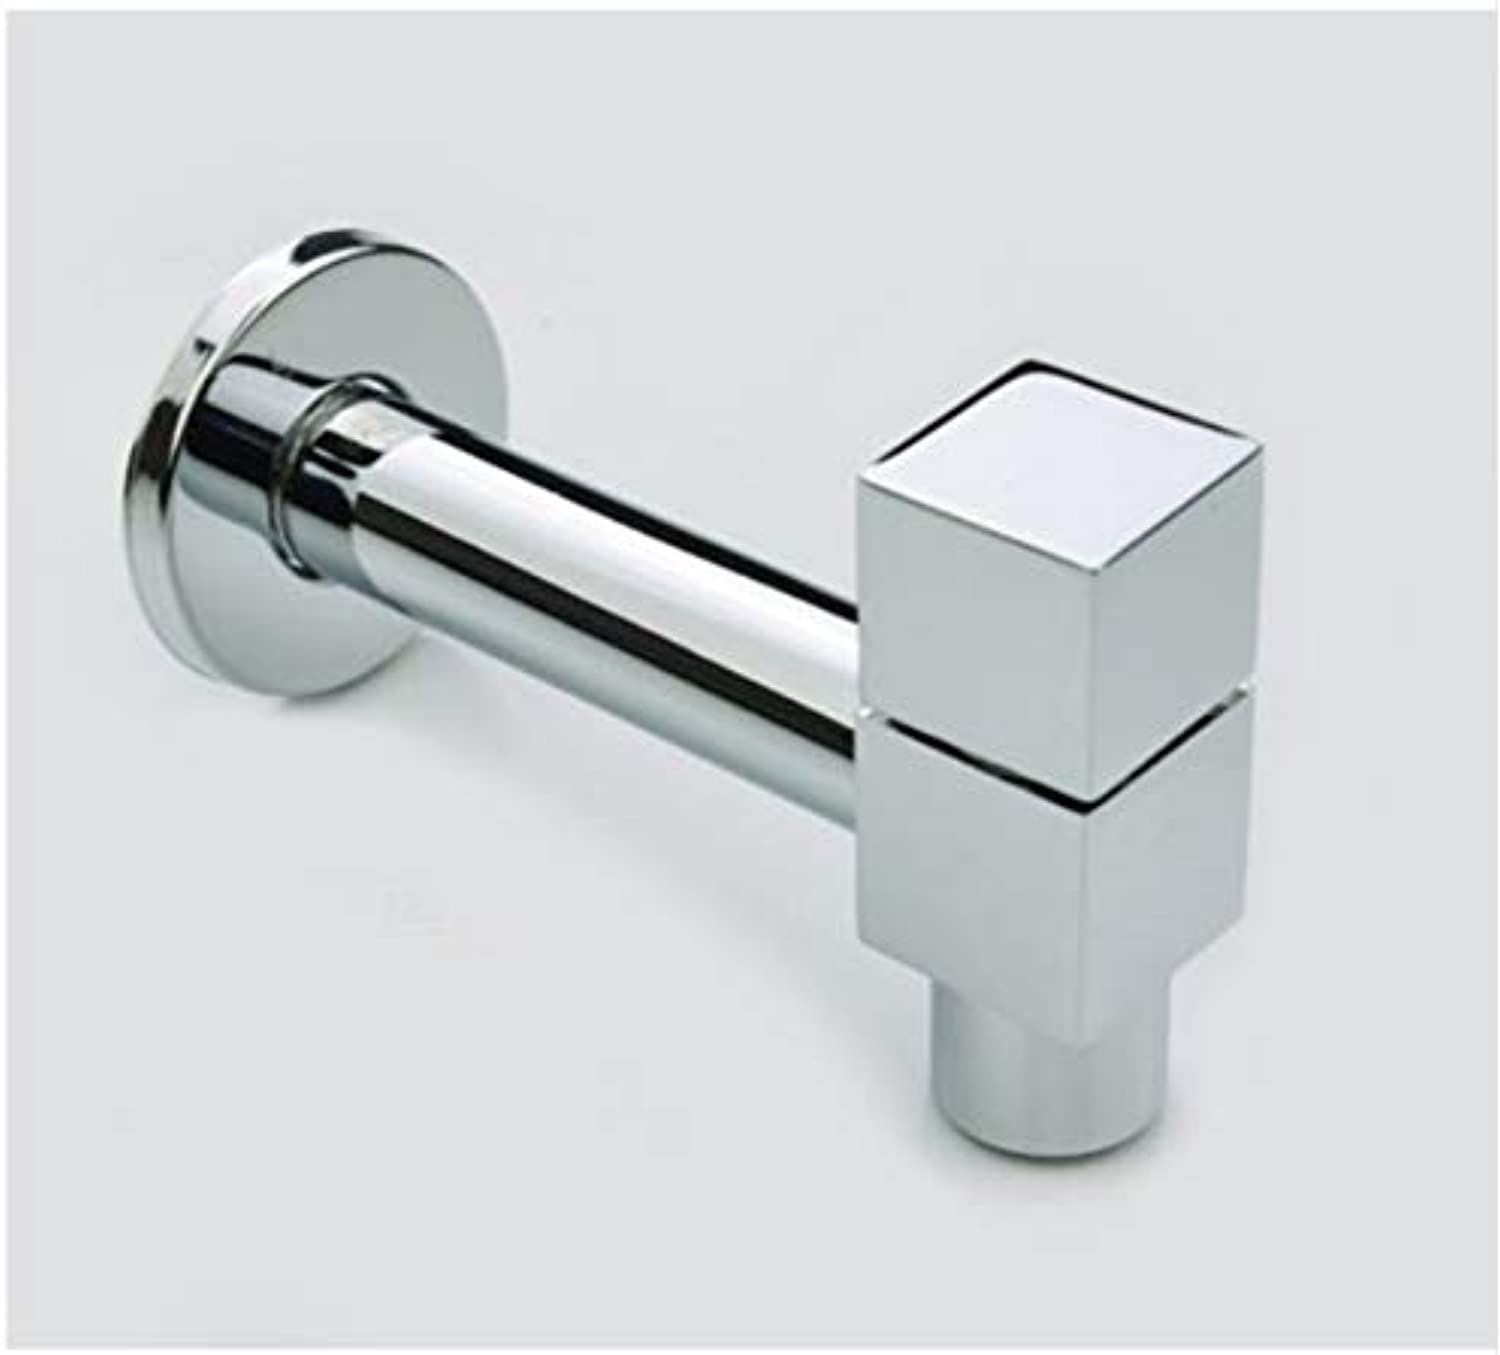 LLLYZZ Brass Cold Water Faucet, Wall Mounted Basin Tap, Basin Bibcock Square Cold Faucet